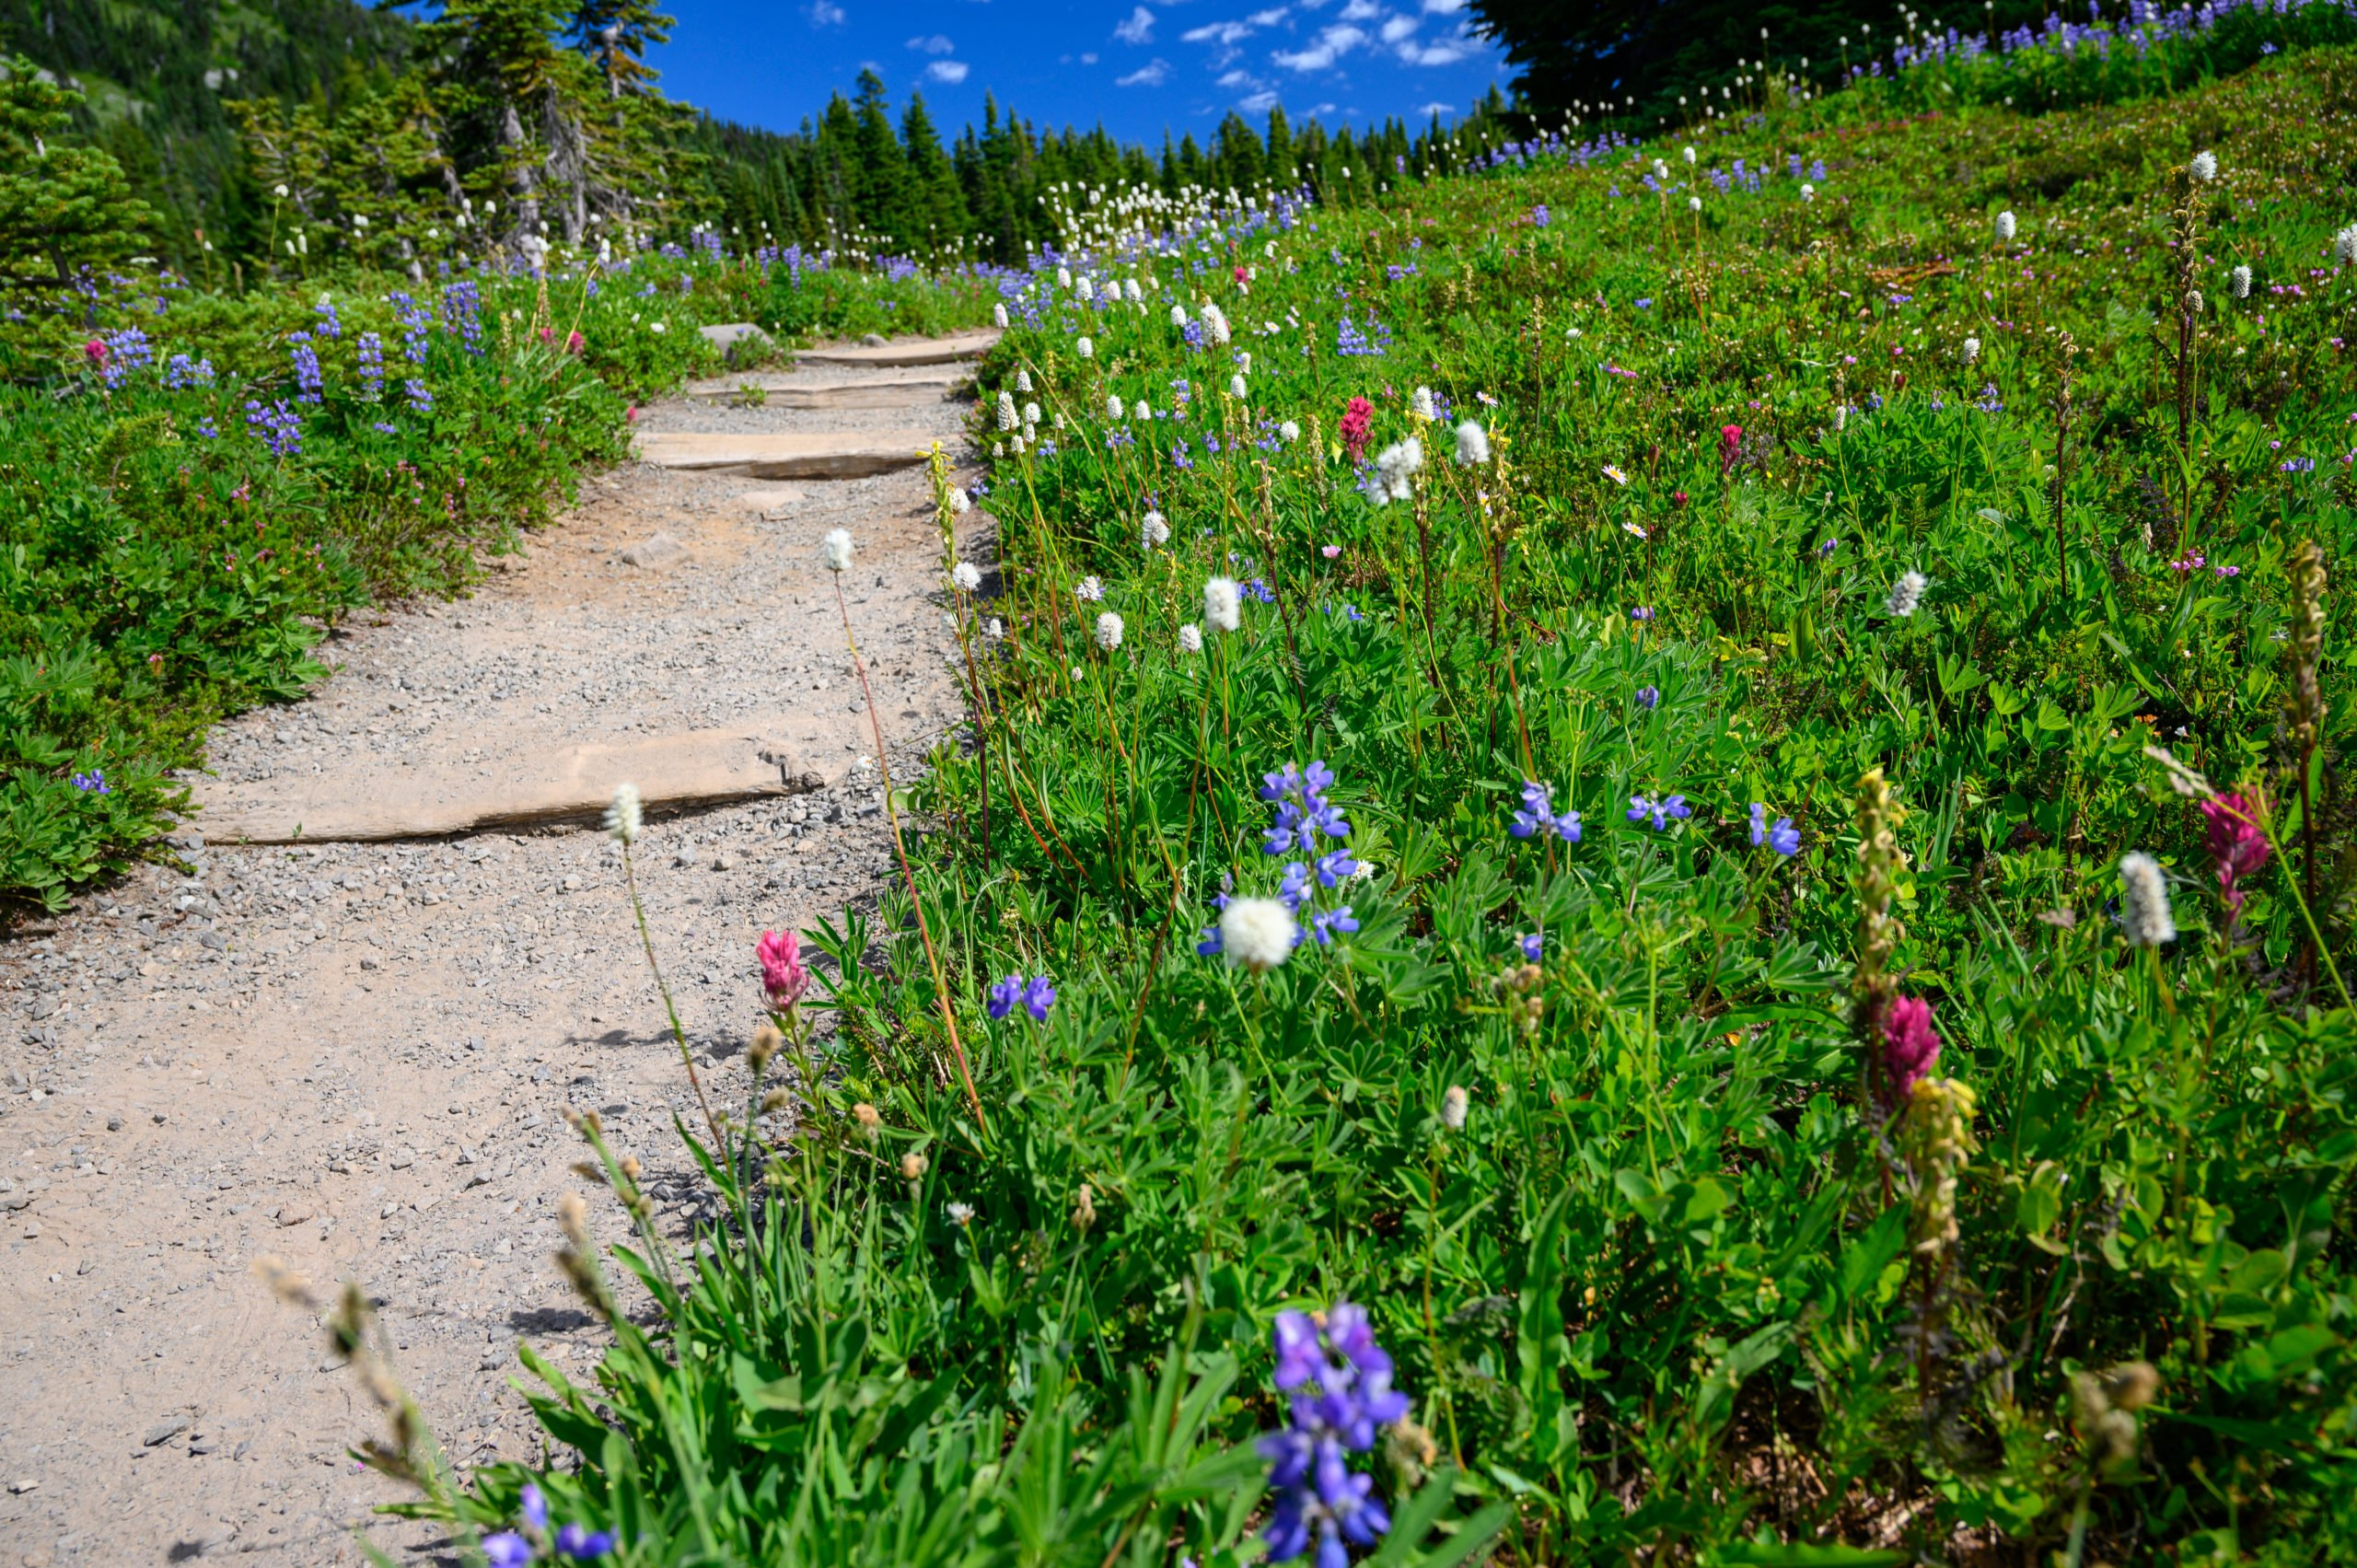 Spray Park trail with wildflowers on each side.